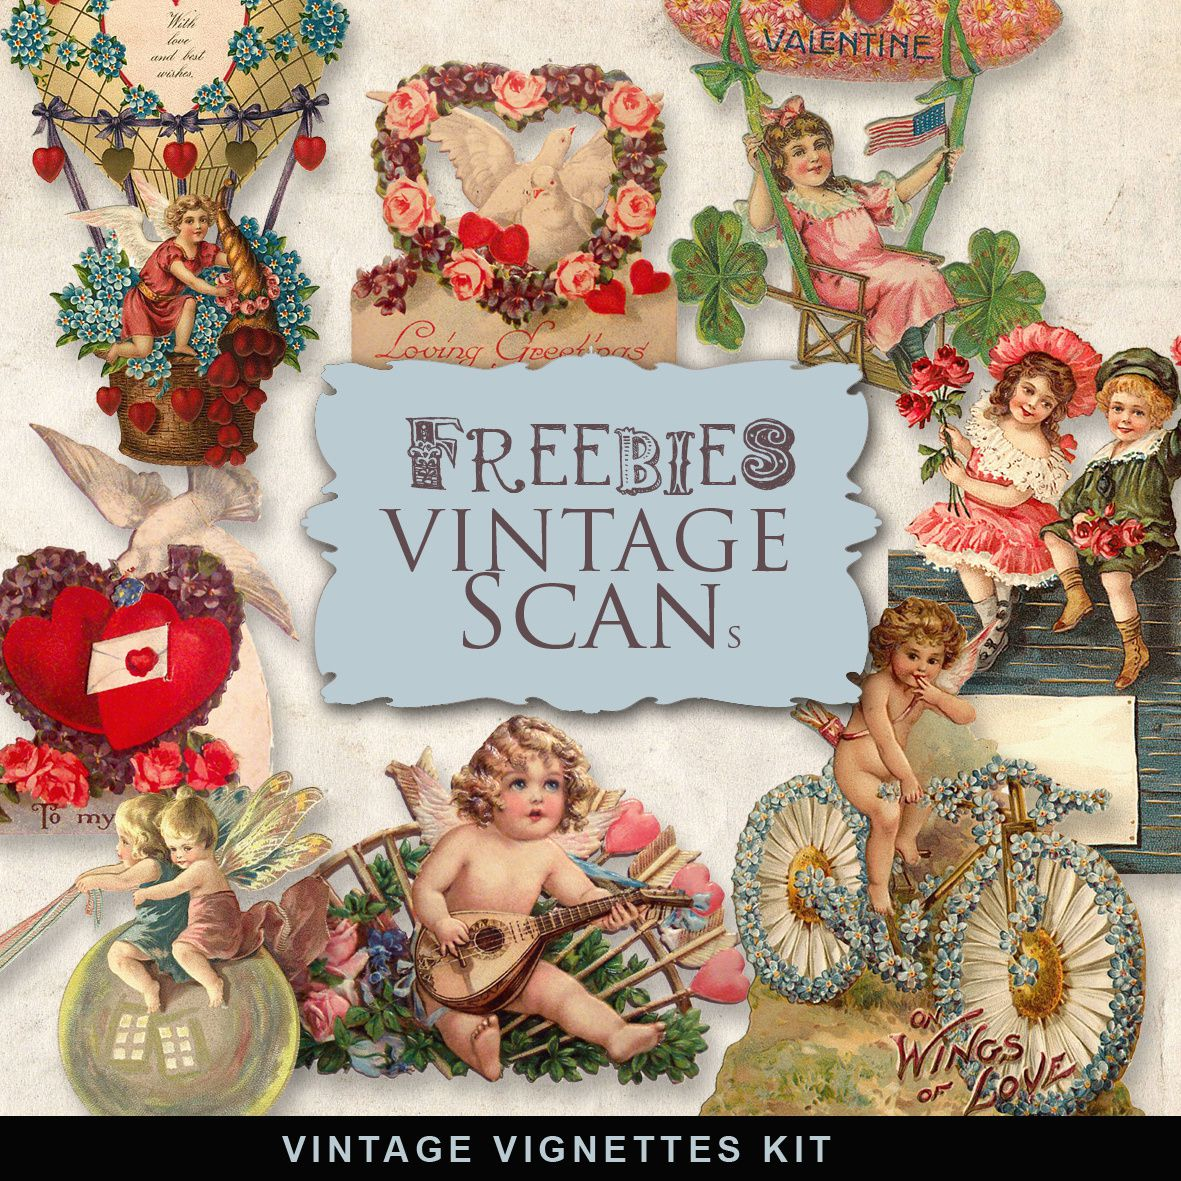 Vignettes,scan,be,mine,vintage,set,scrap,kit,free,Page,Scrapbooking,Sketche,digital,layout,bases,techniques,dérivés,kits,freebies,fathia,nasr,scraps,valentine,day,saint,valentin,full,heart,cœur,lovey,amoureux,funky,